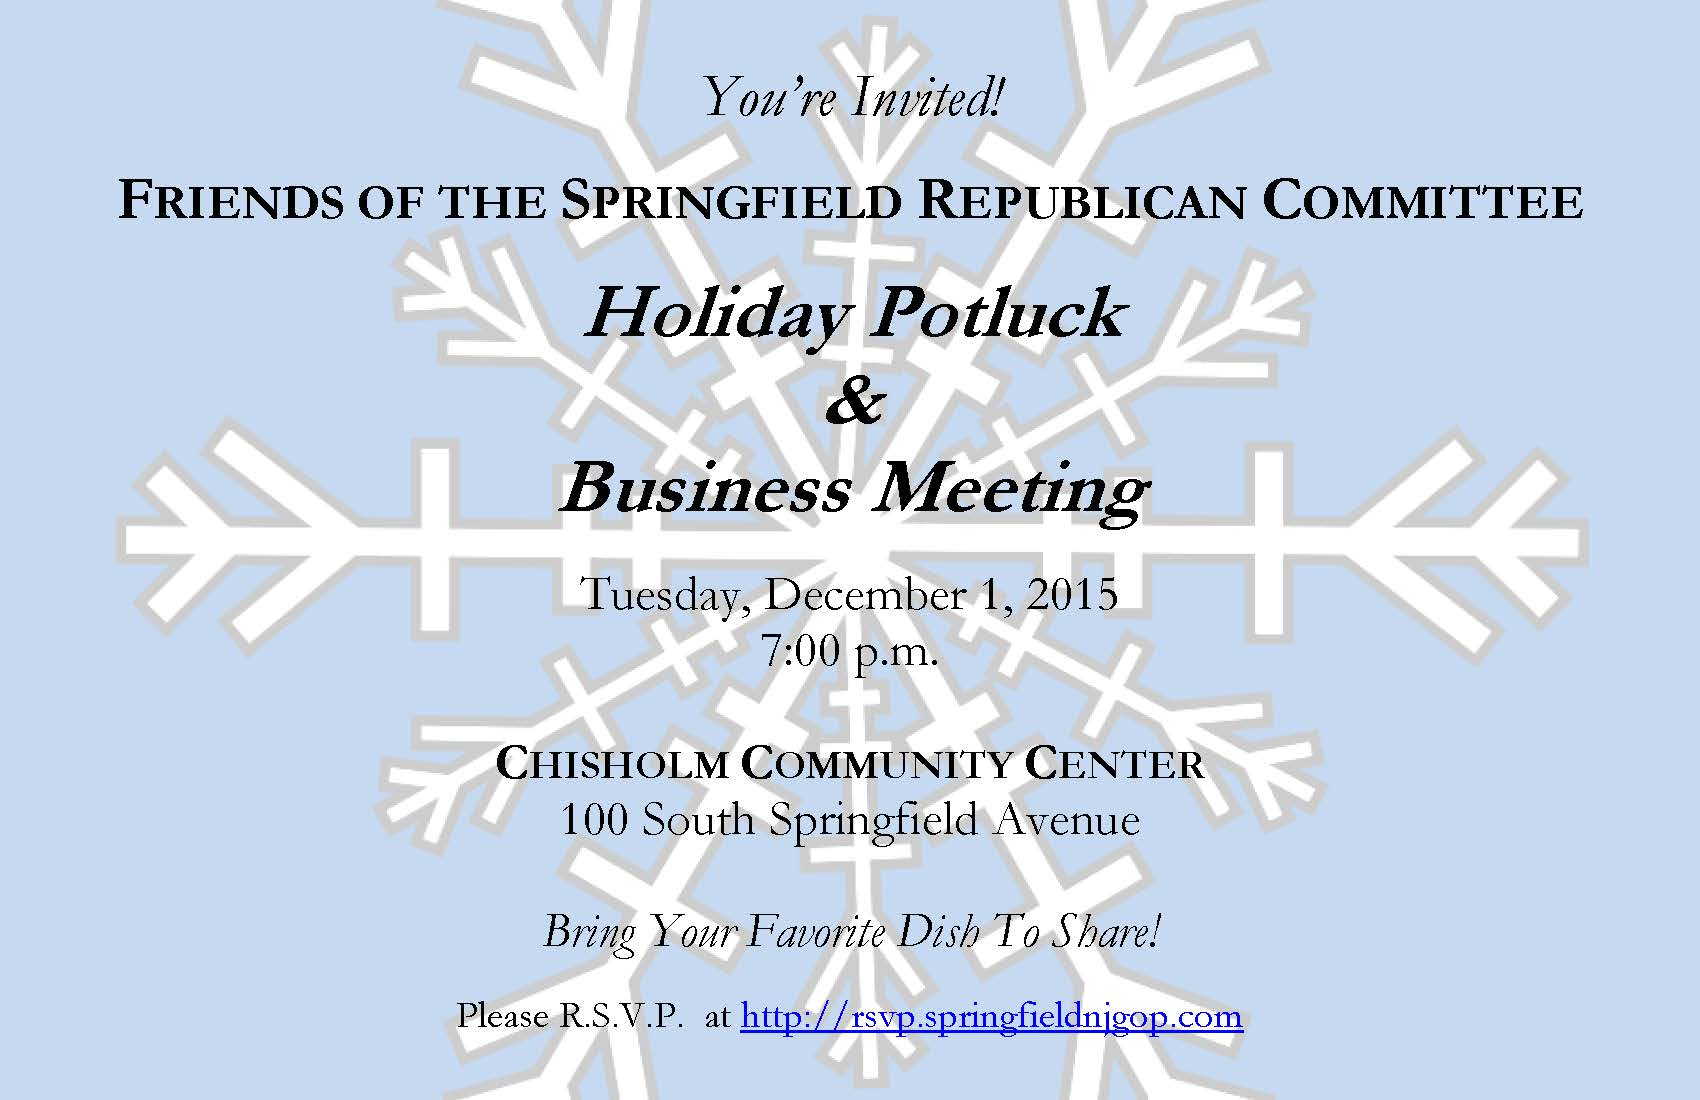 Holiday Potluck & Business Meeting